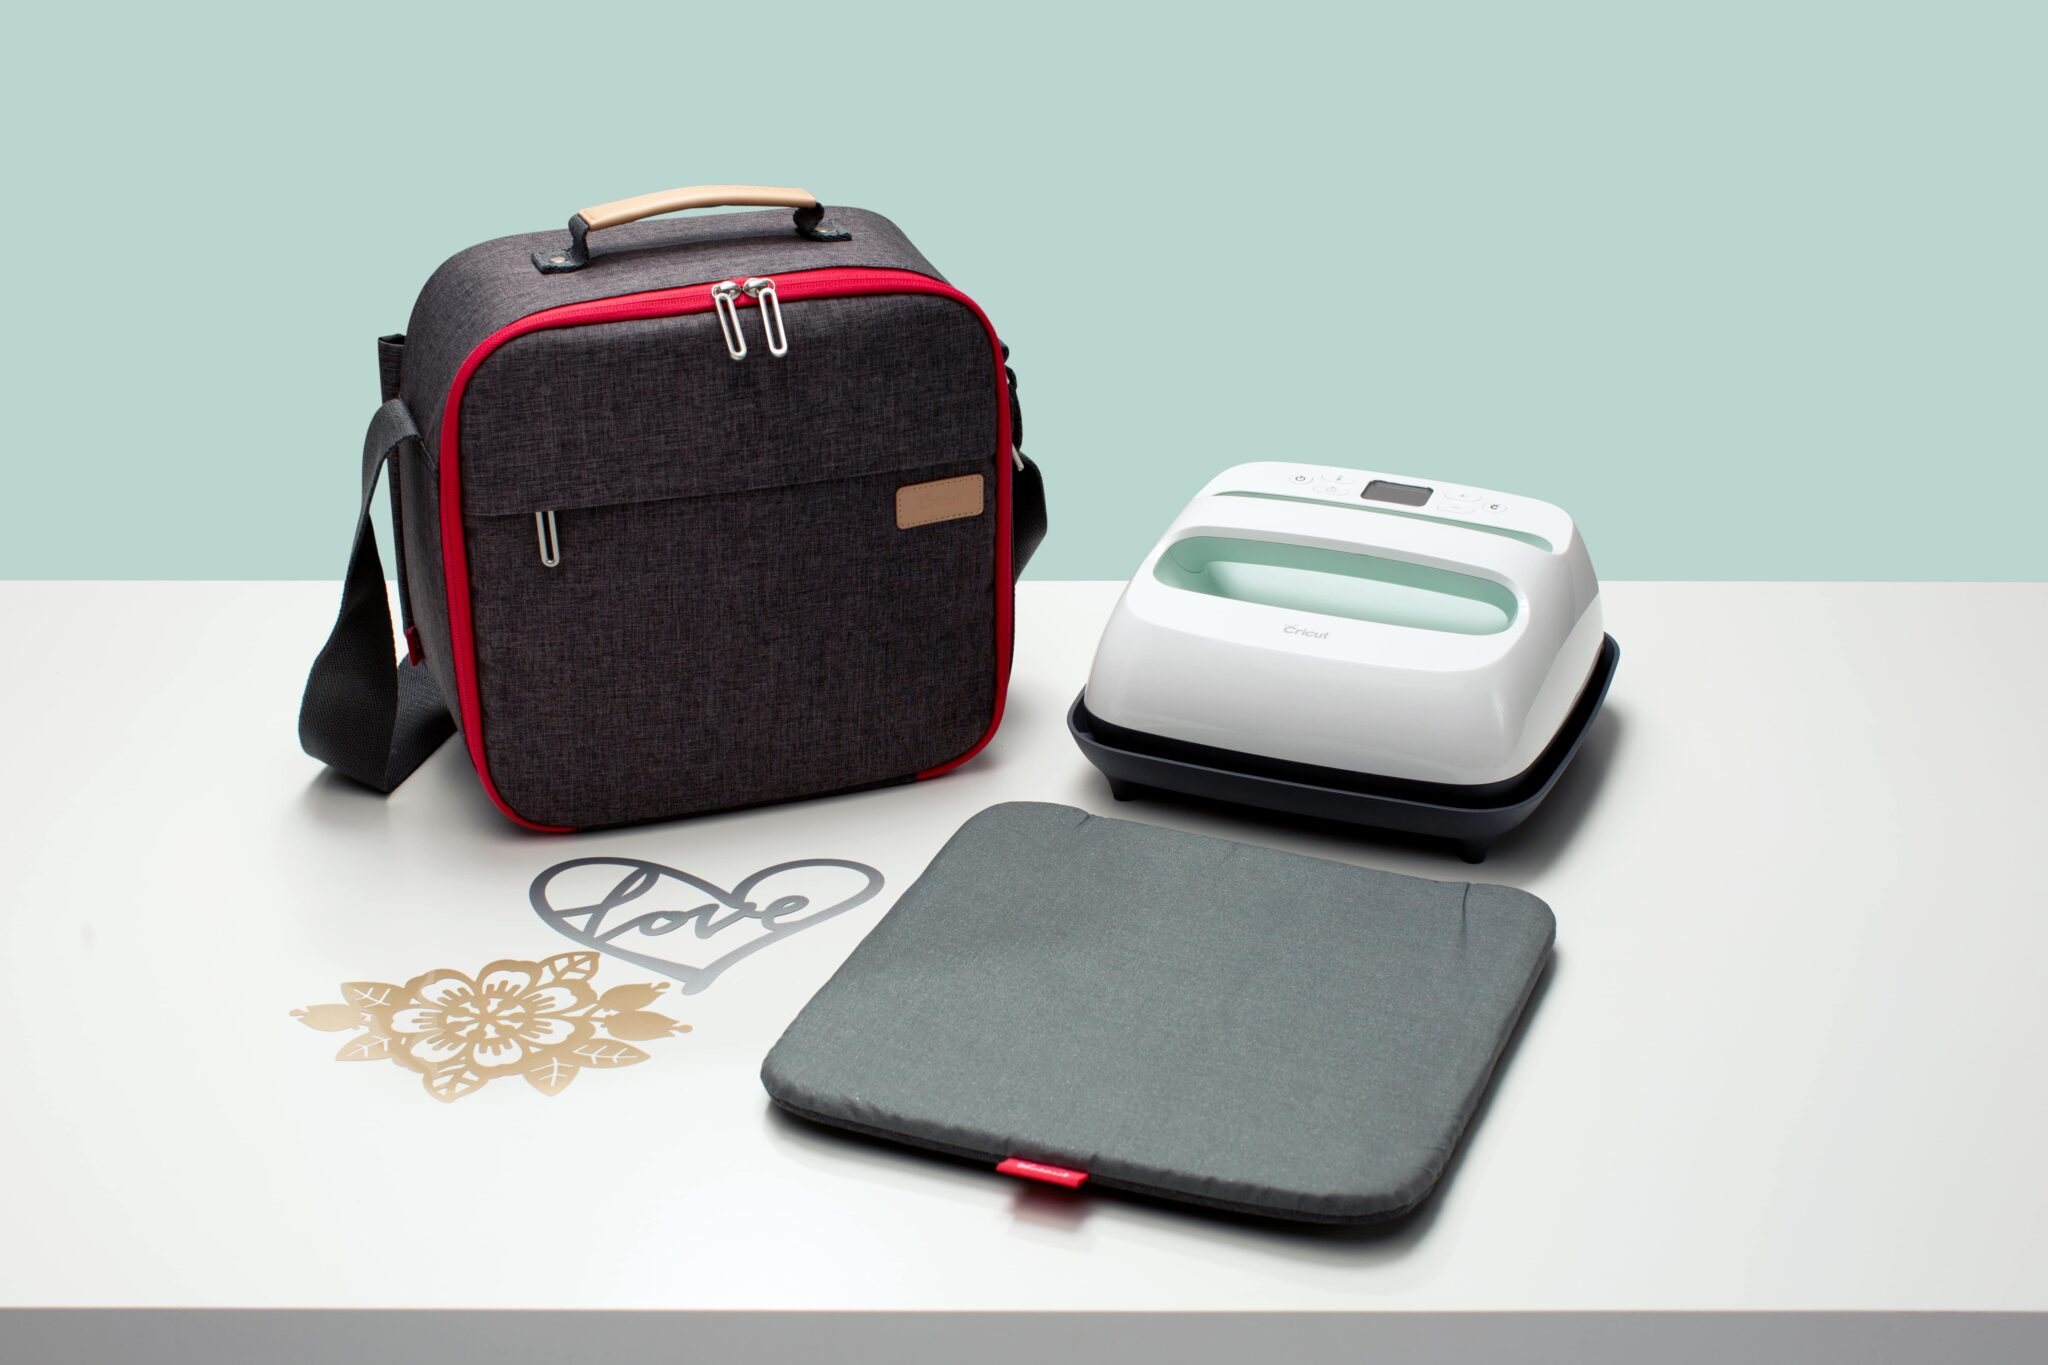 53f348cebfda We have 2 new Iron on Bundles for you to use with your Cricut Easy Press.  You ll be able to choose from our Amelie Patterns and our Lila Patterns!